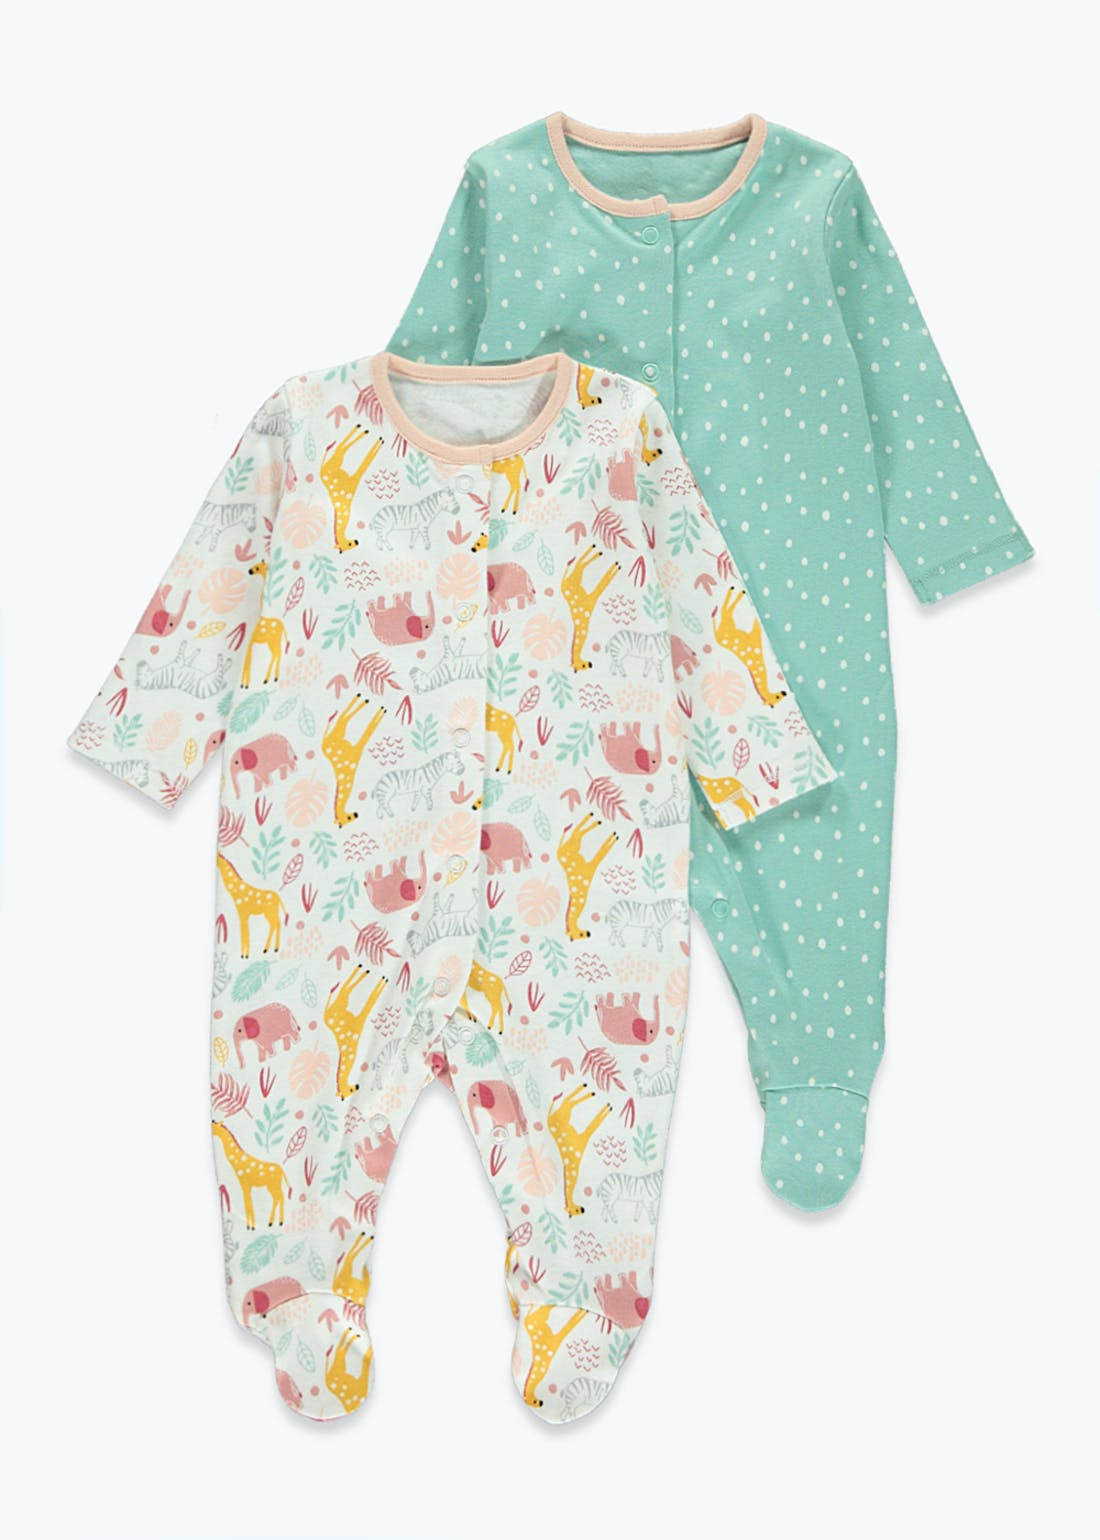 Girls 2 Pack Safari Print Baby Grows (Tiny Baby-23mths)